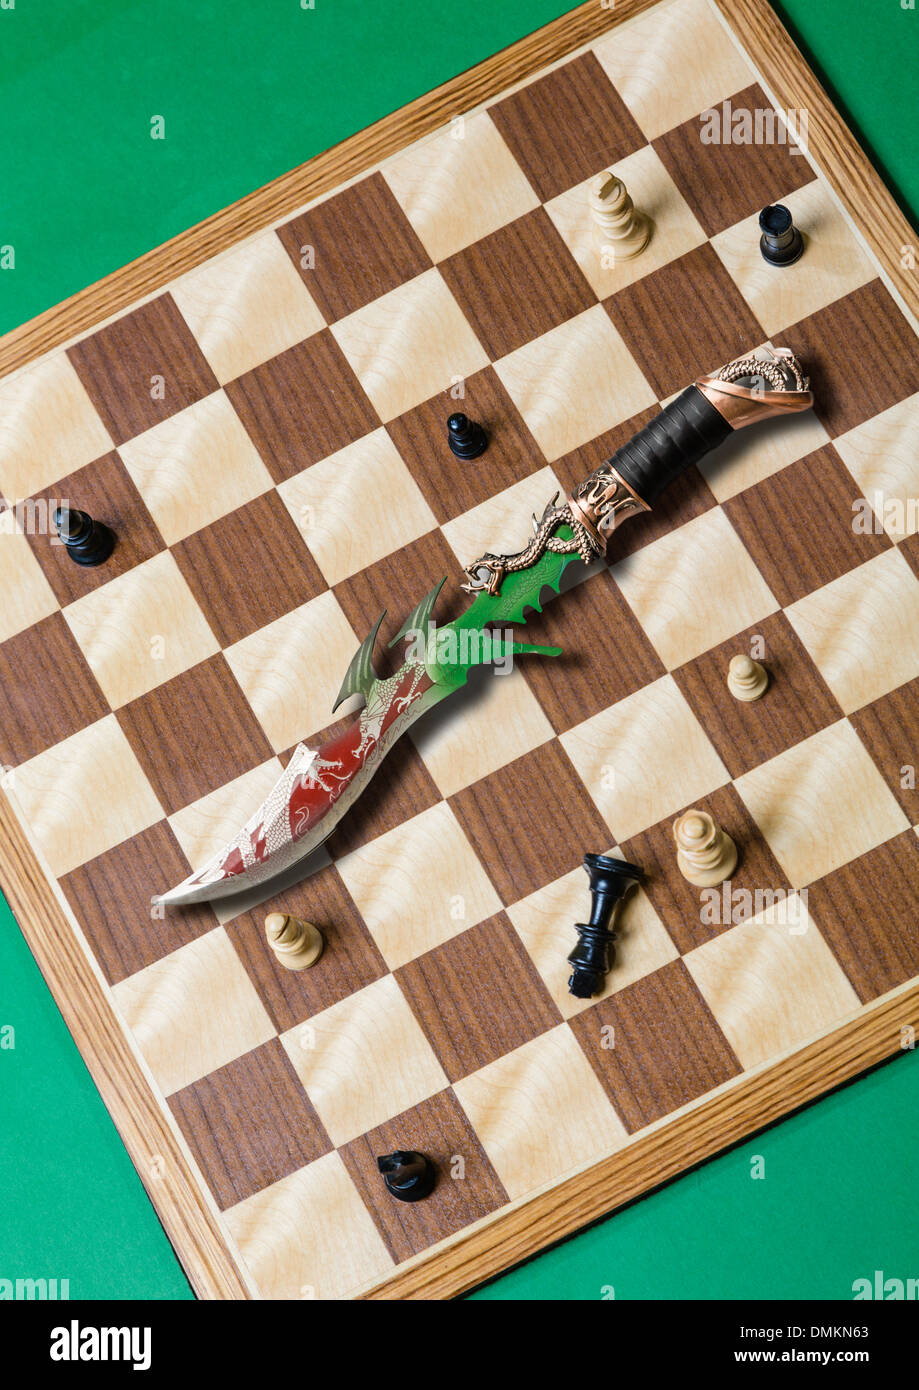 Chess board from above with ornate dagger on it.  Black king on its side.  Suitable for book cover or poster. - Stock Image